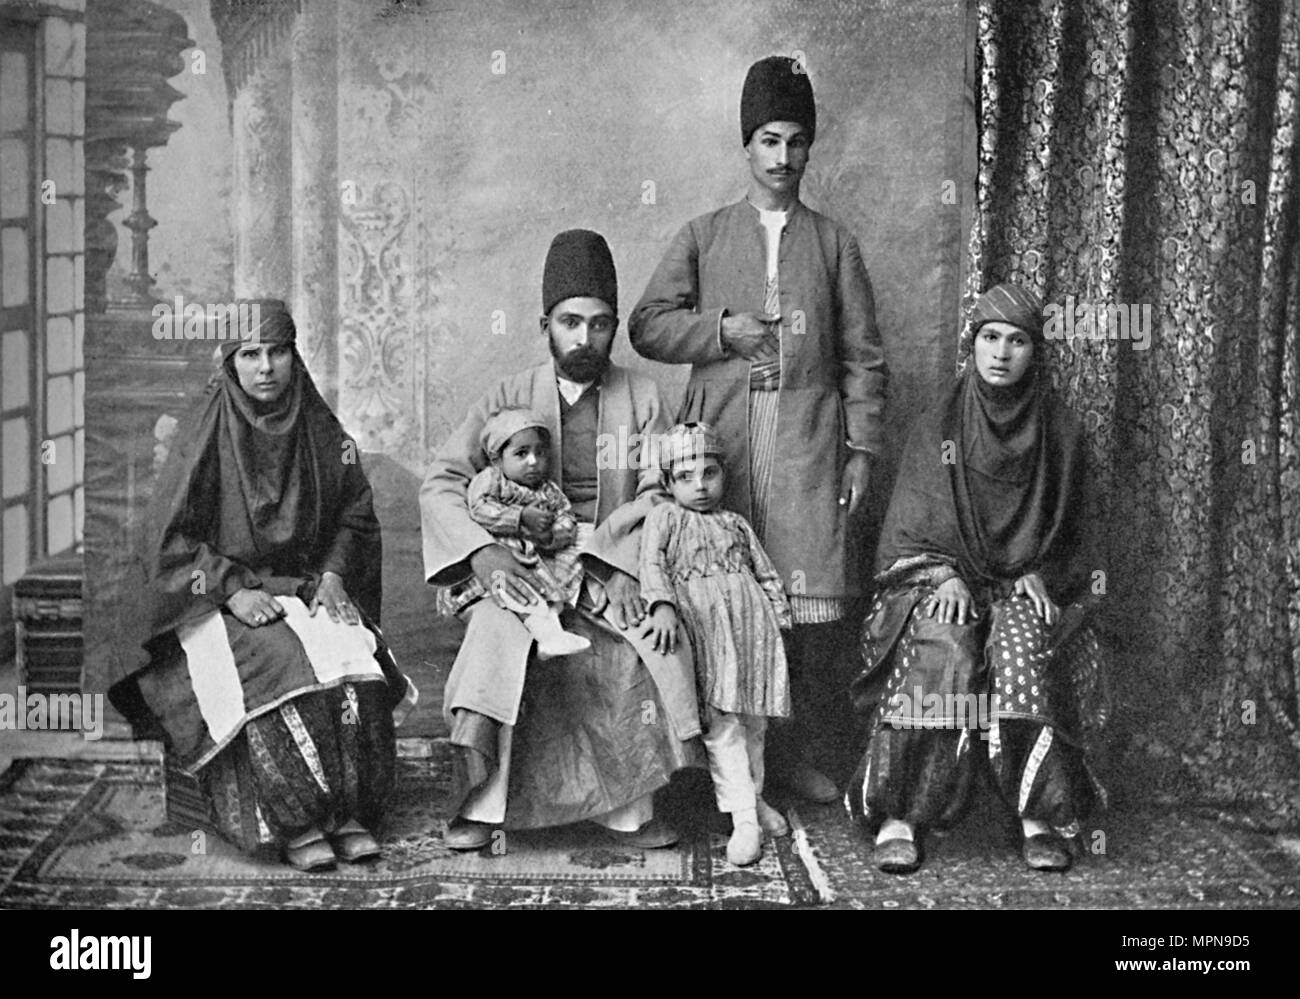 A Persian Parsi family, 1902. Artist: Unknown. Stock Photo